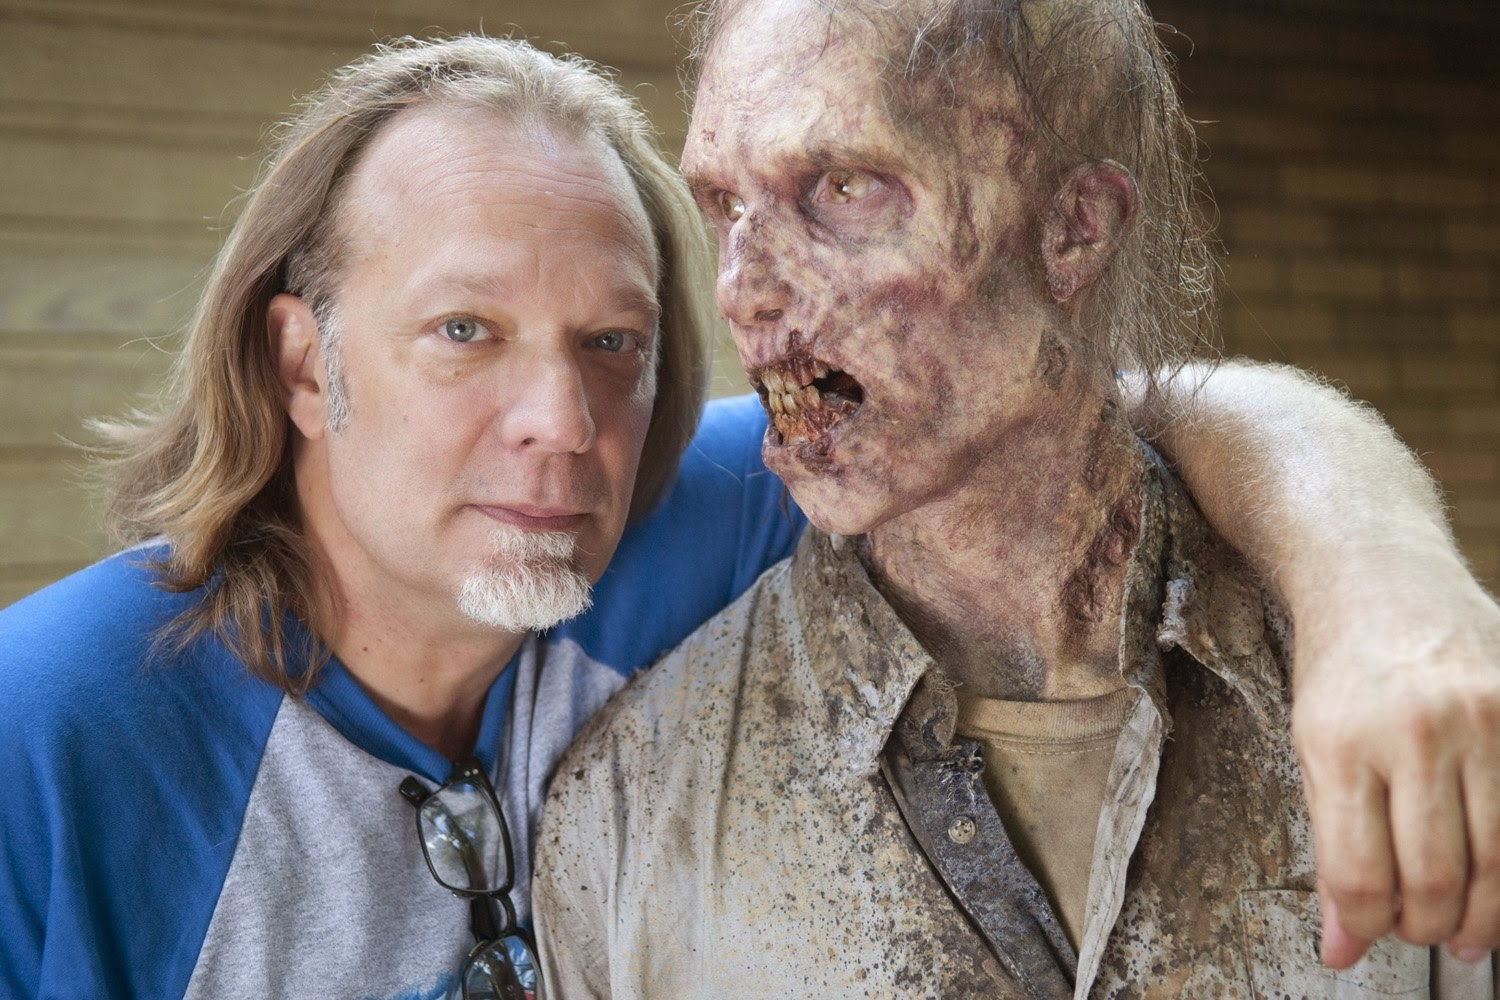 Pittsburgh's Greg Nicotero, executive producer of 'The Walking Dead'